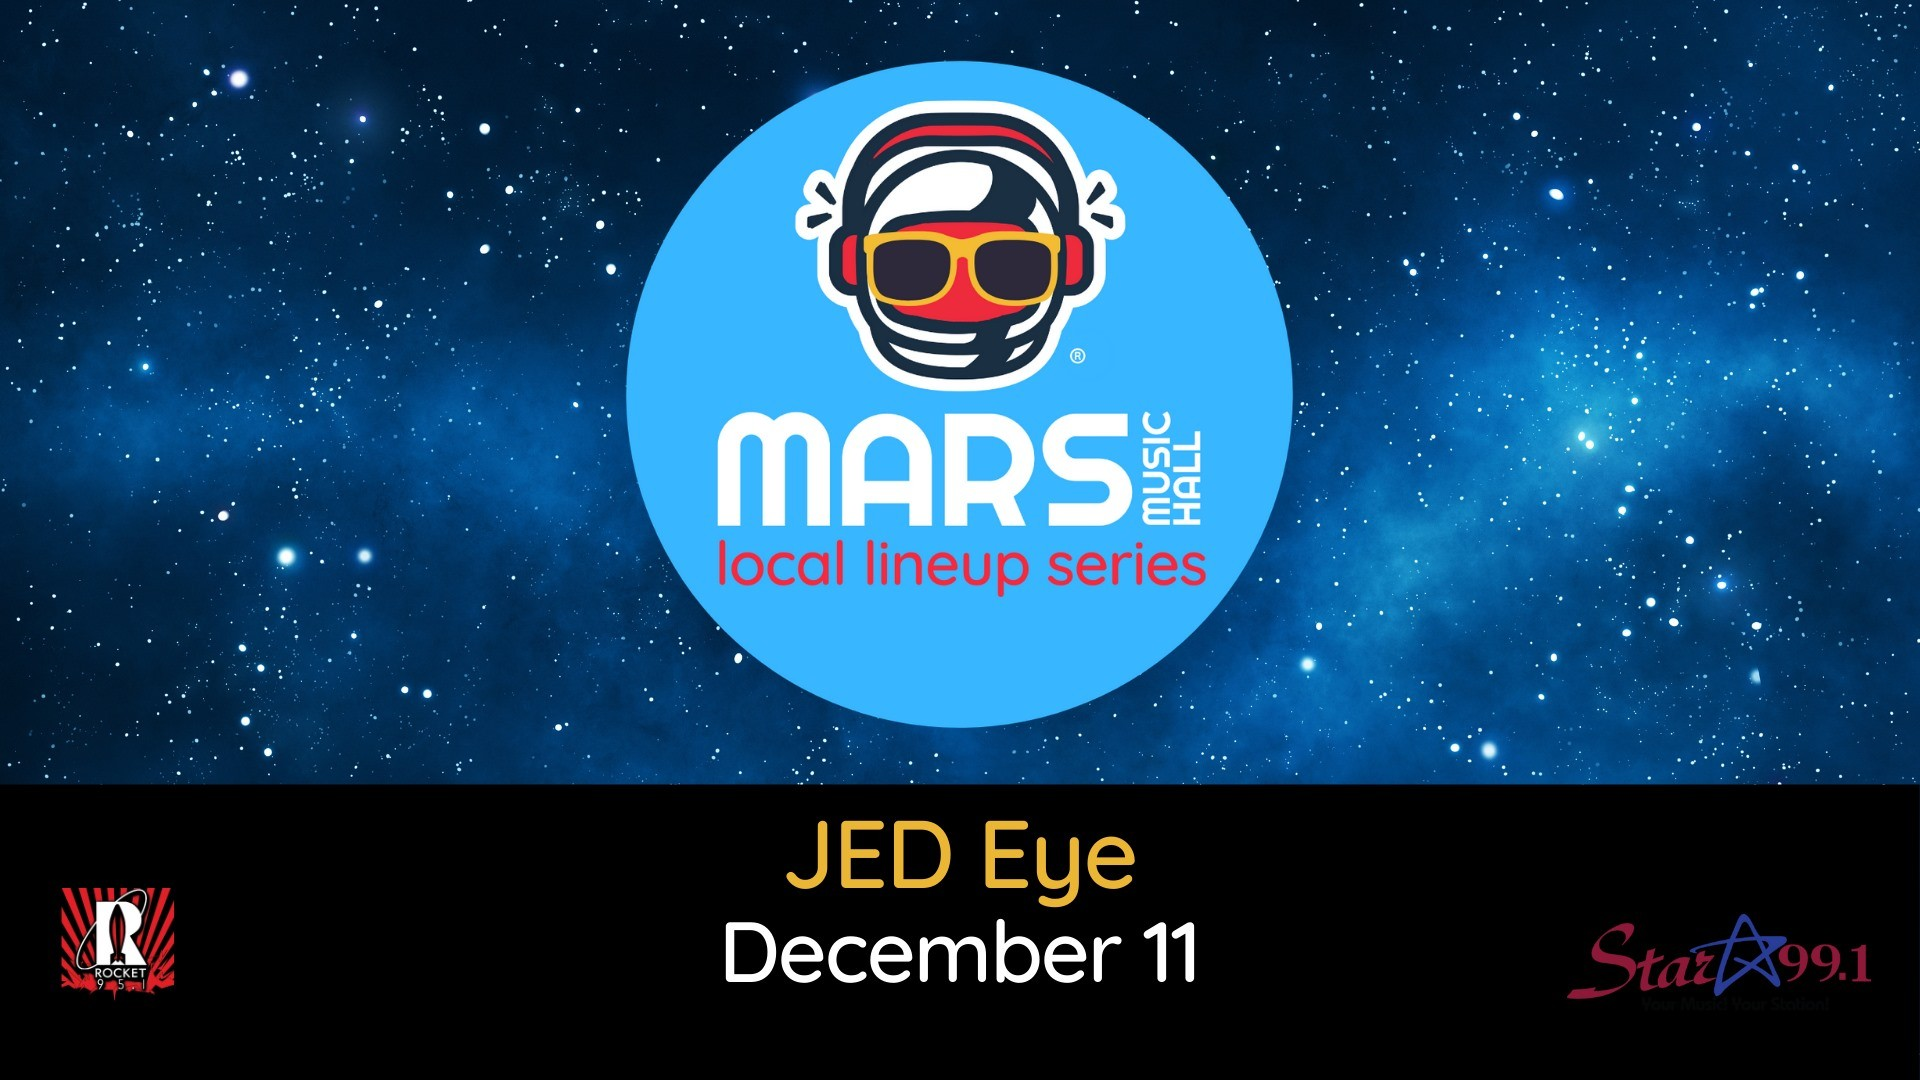 JED Eye at Mars Music Hall